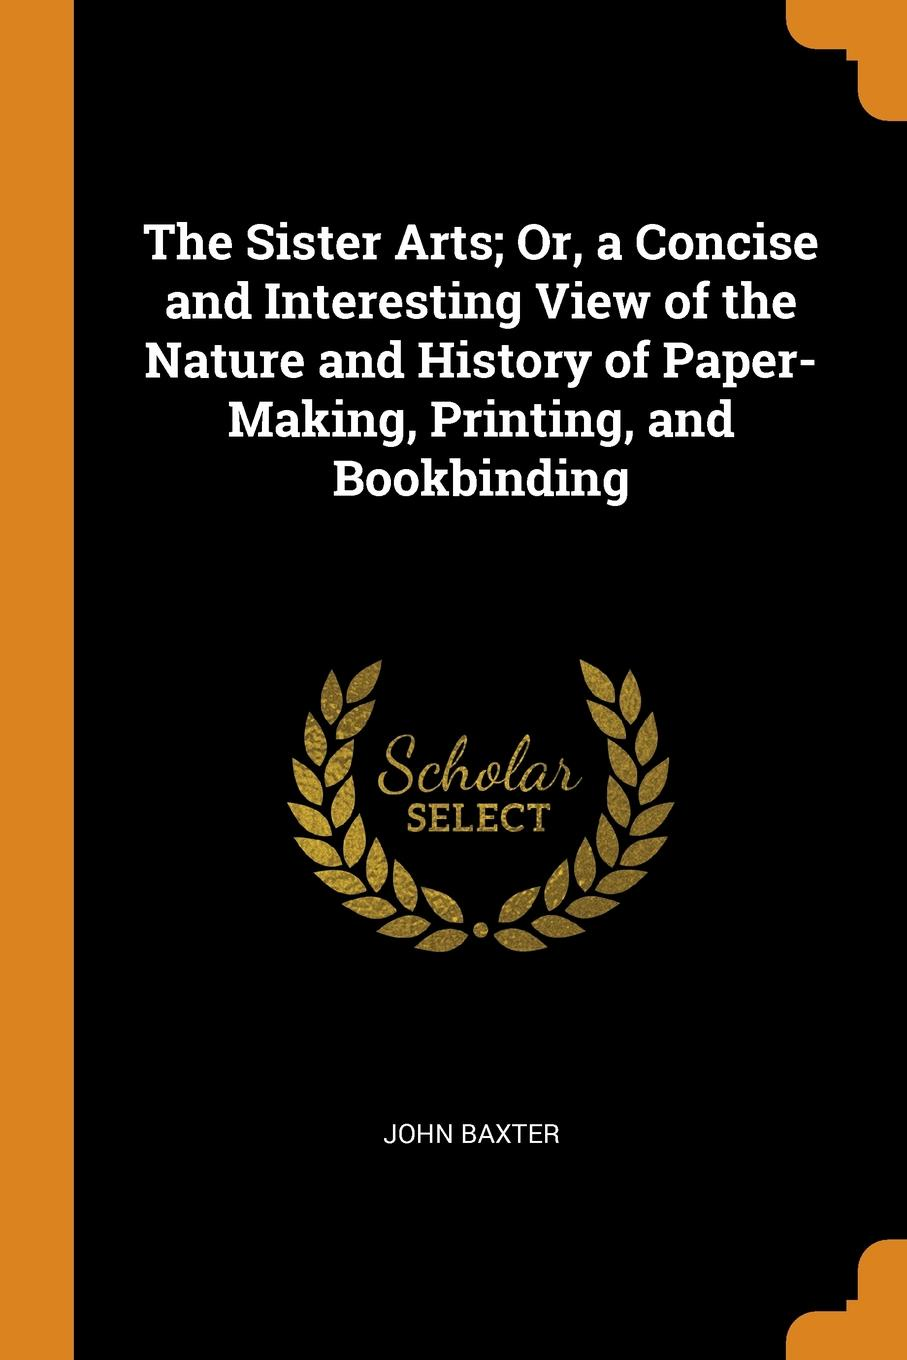 John Baxter. The Sister Arts; Or, a Concise and Interesting View of the Nature and History of Paper-Making, Printing, and Bookbinding